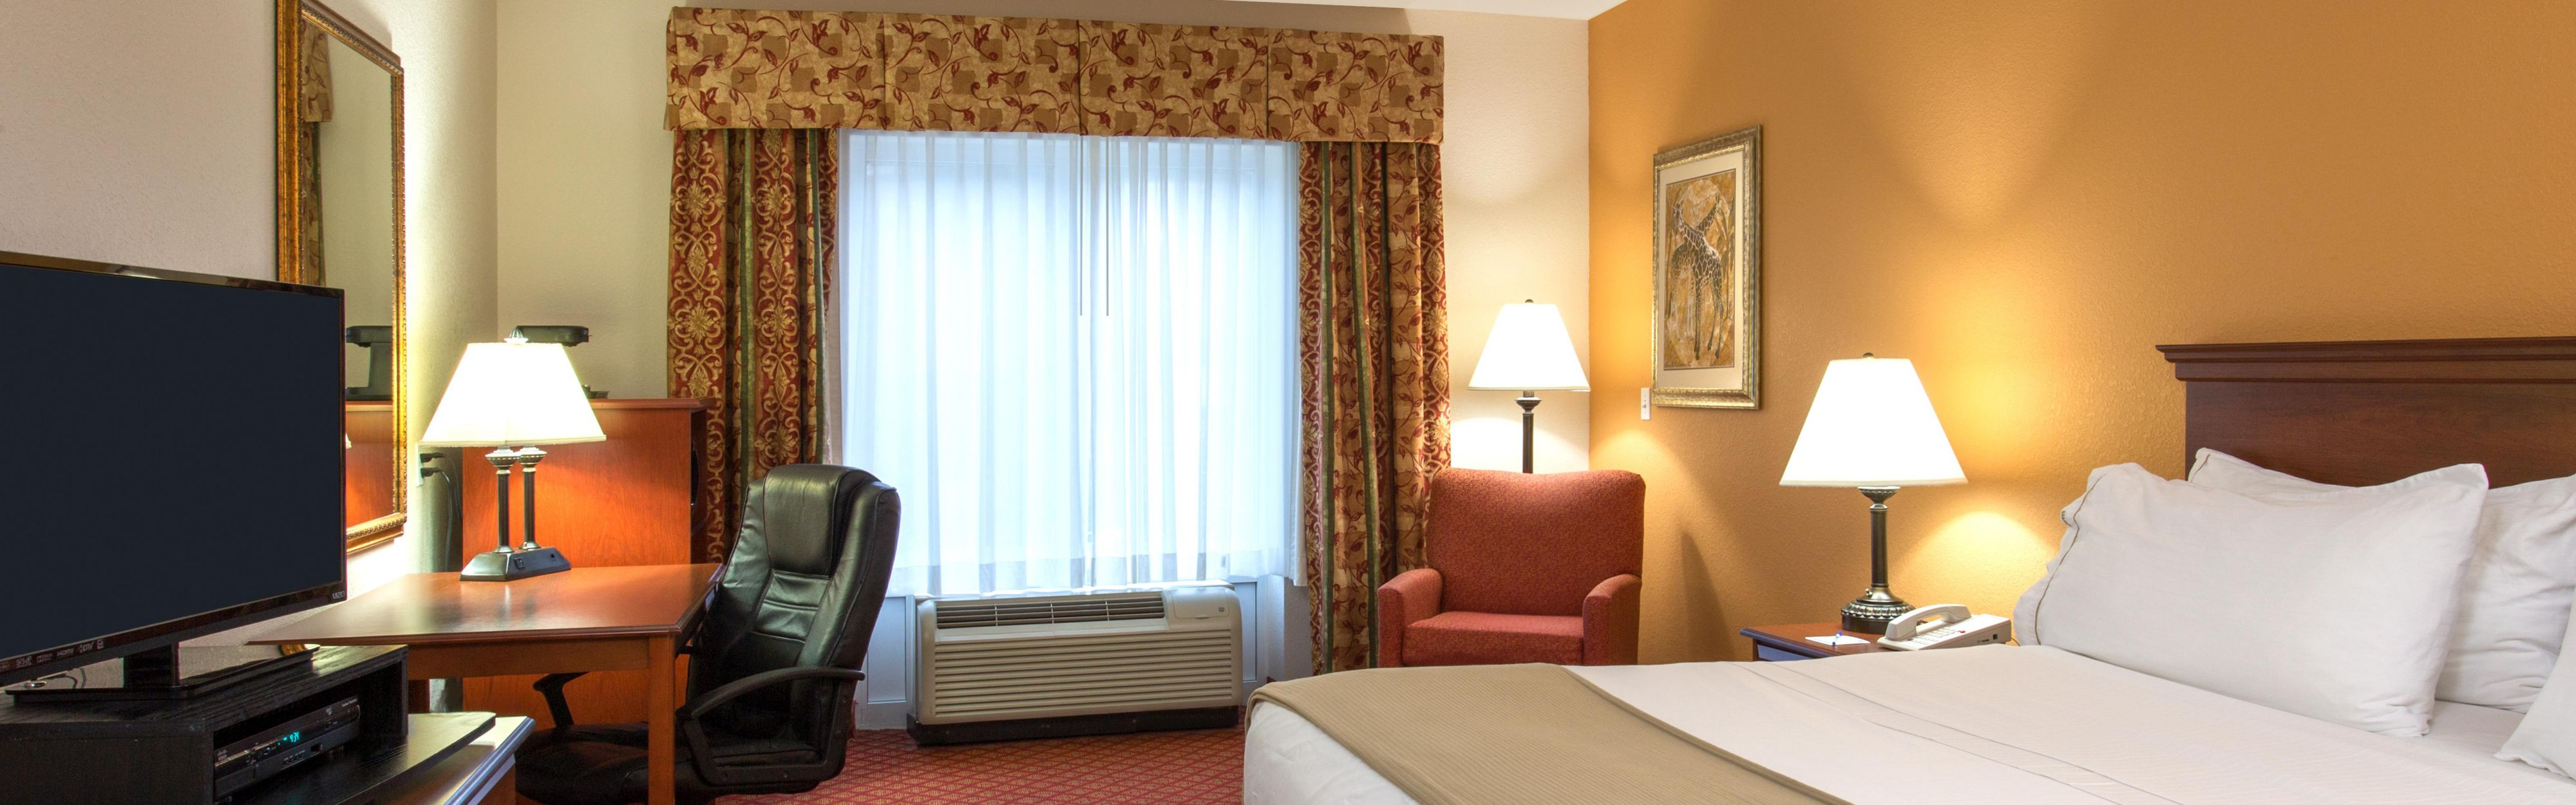 Holiday Inn Express & Suites Silver Springs-Ocala